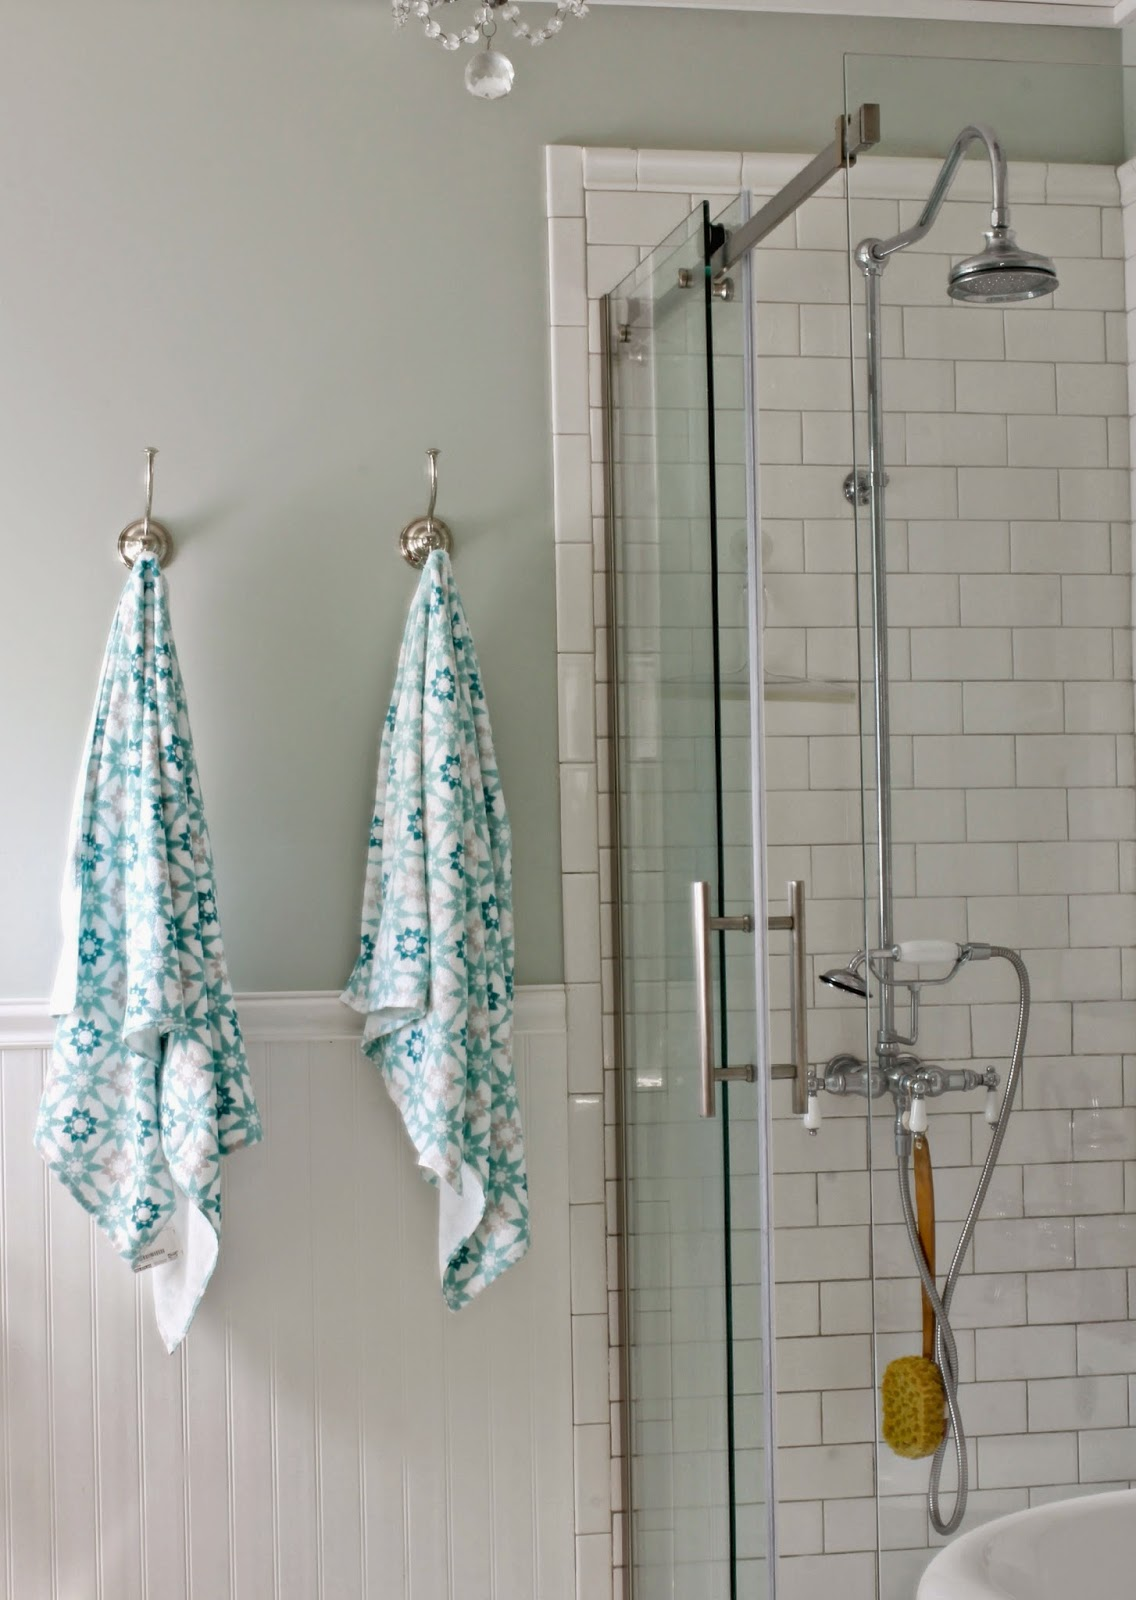 Ikea Ingeborg bath towel in bathroom with bead board and pedestal tub-www.goldenboysandme.com